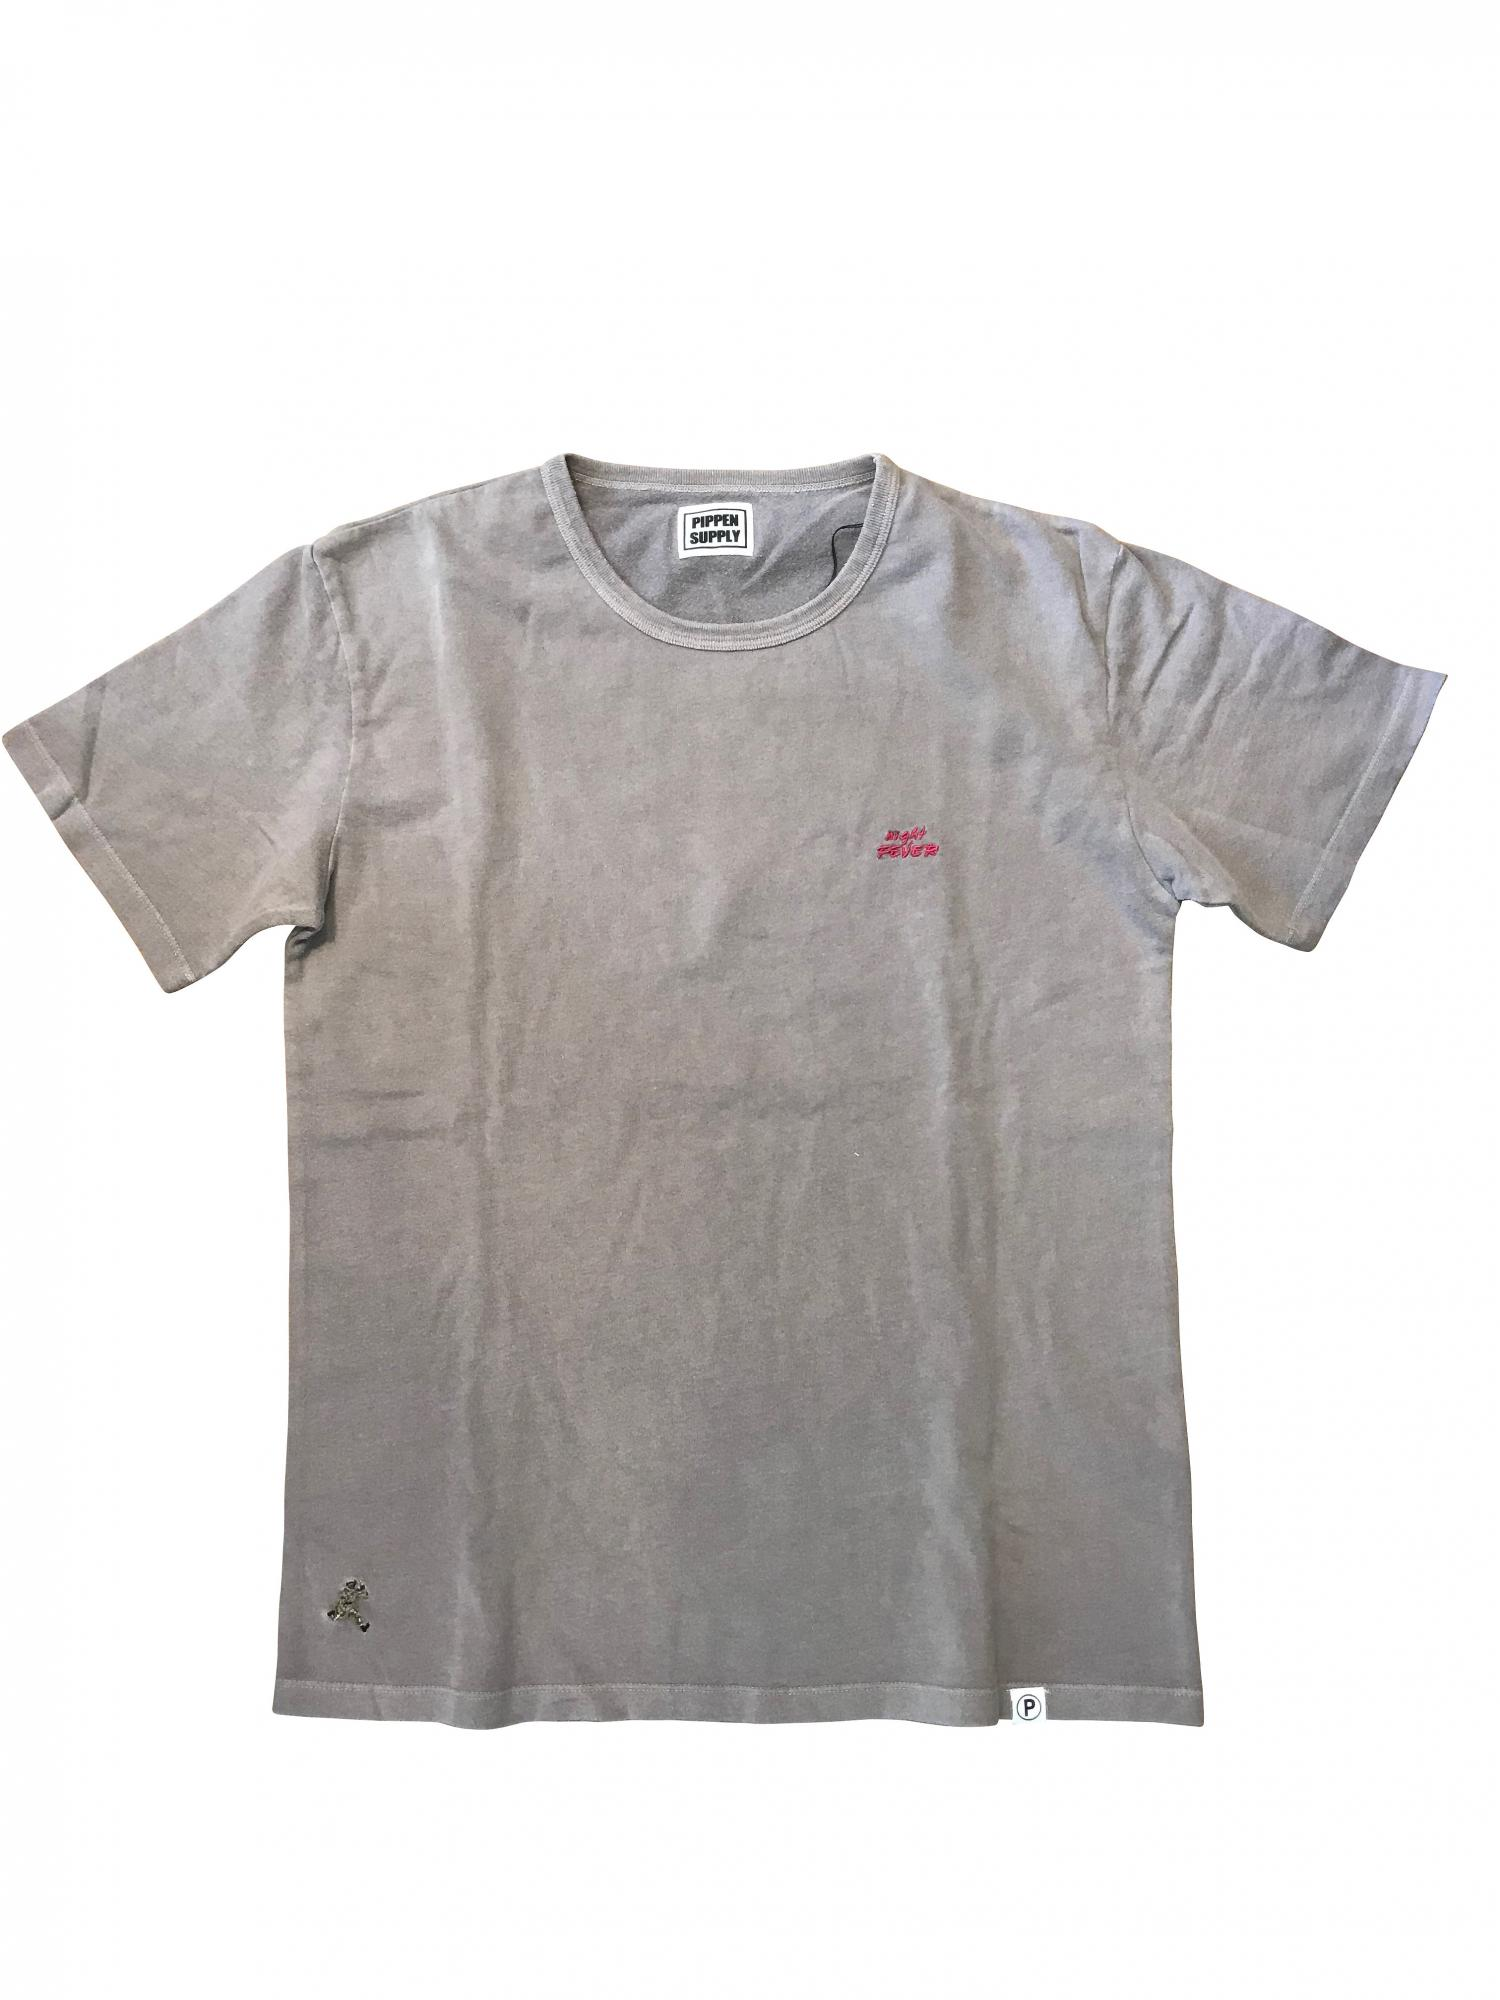 P SUPPLY. Night Fever TEE Light gray